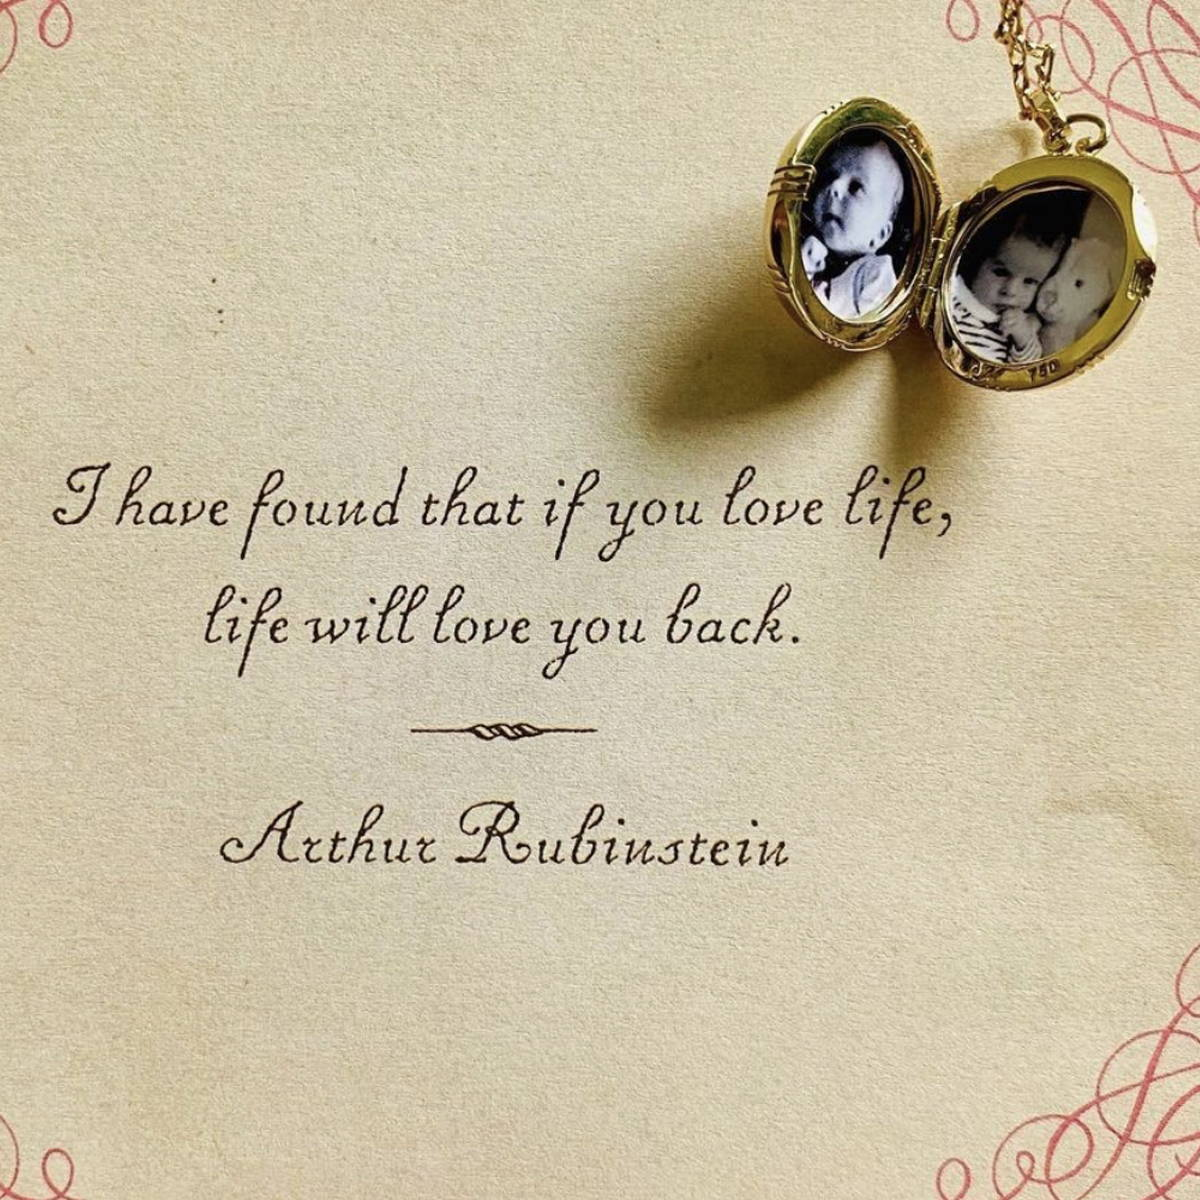 locket and love quote